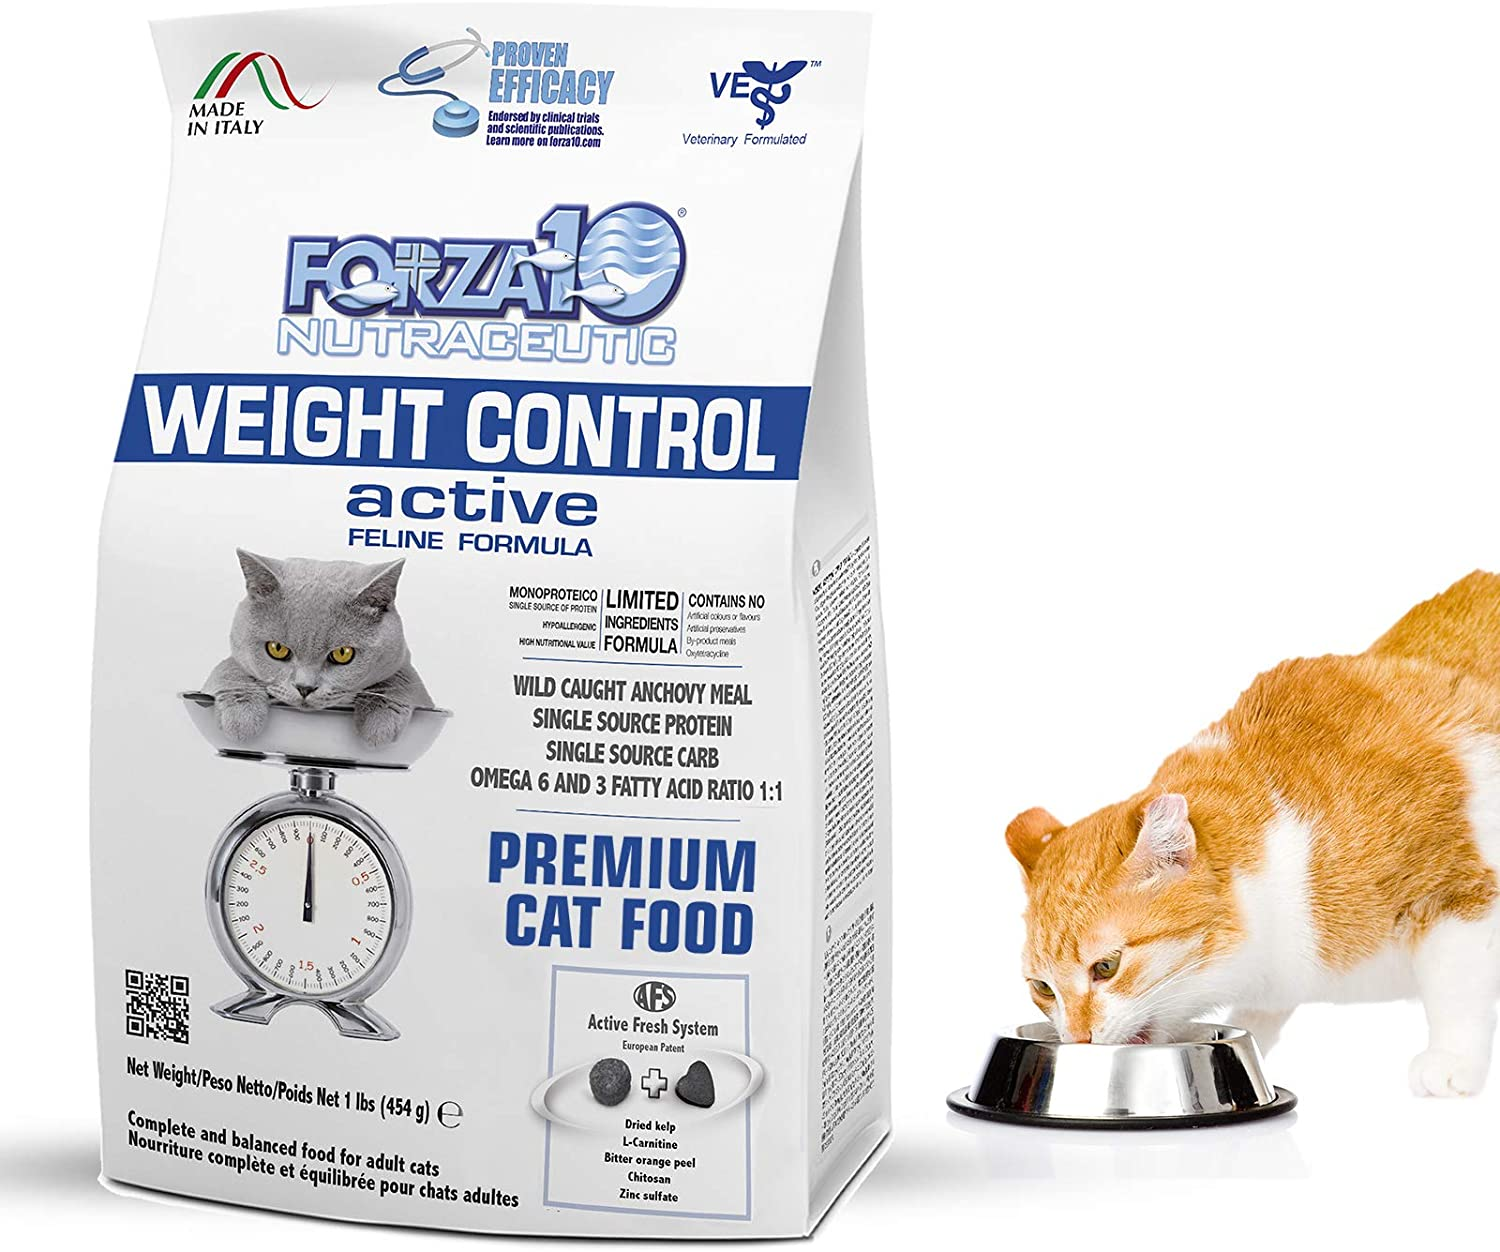 Forza10 Active Weight Control Dry Cat Food Adult 1 Pound Gluten Free Weight Loss Healthy Metabolism Natural Veterinarian Recommended No Prescription